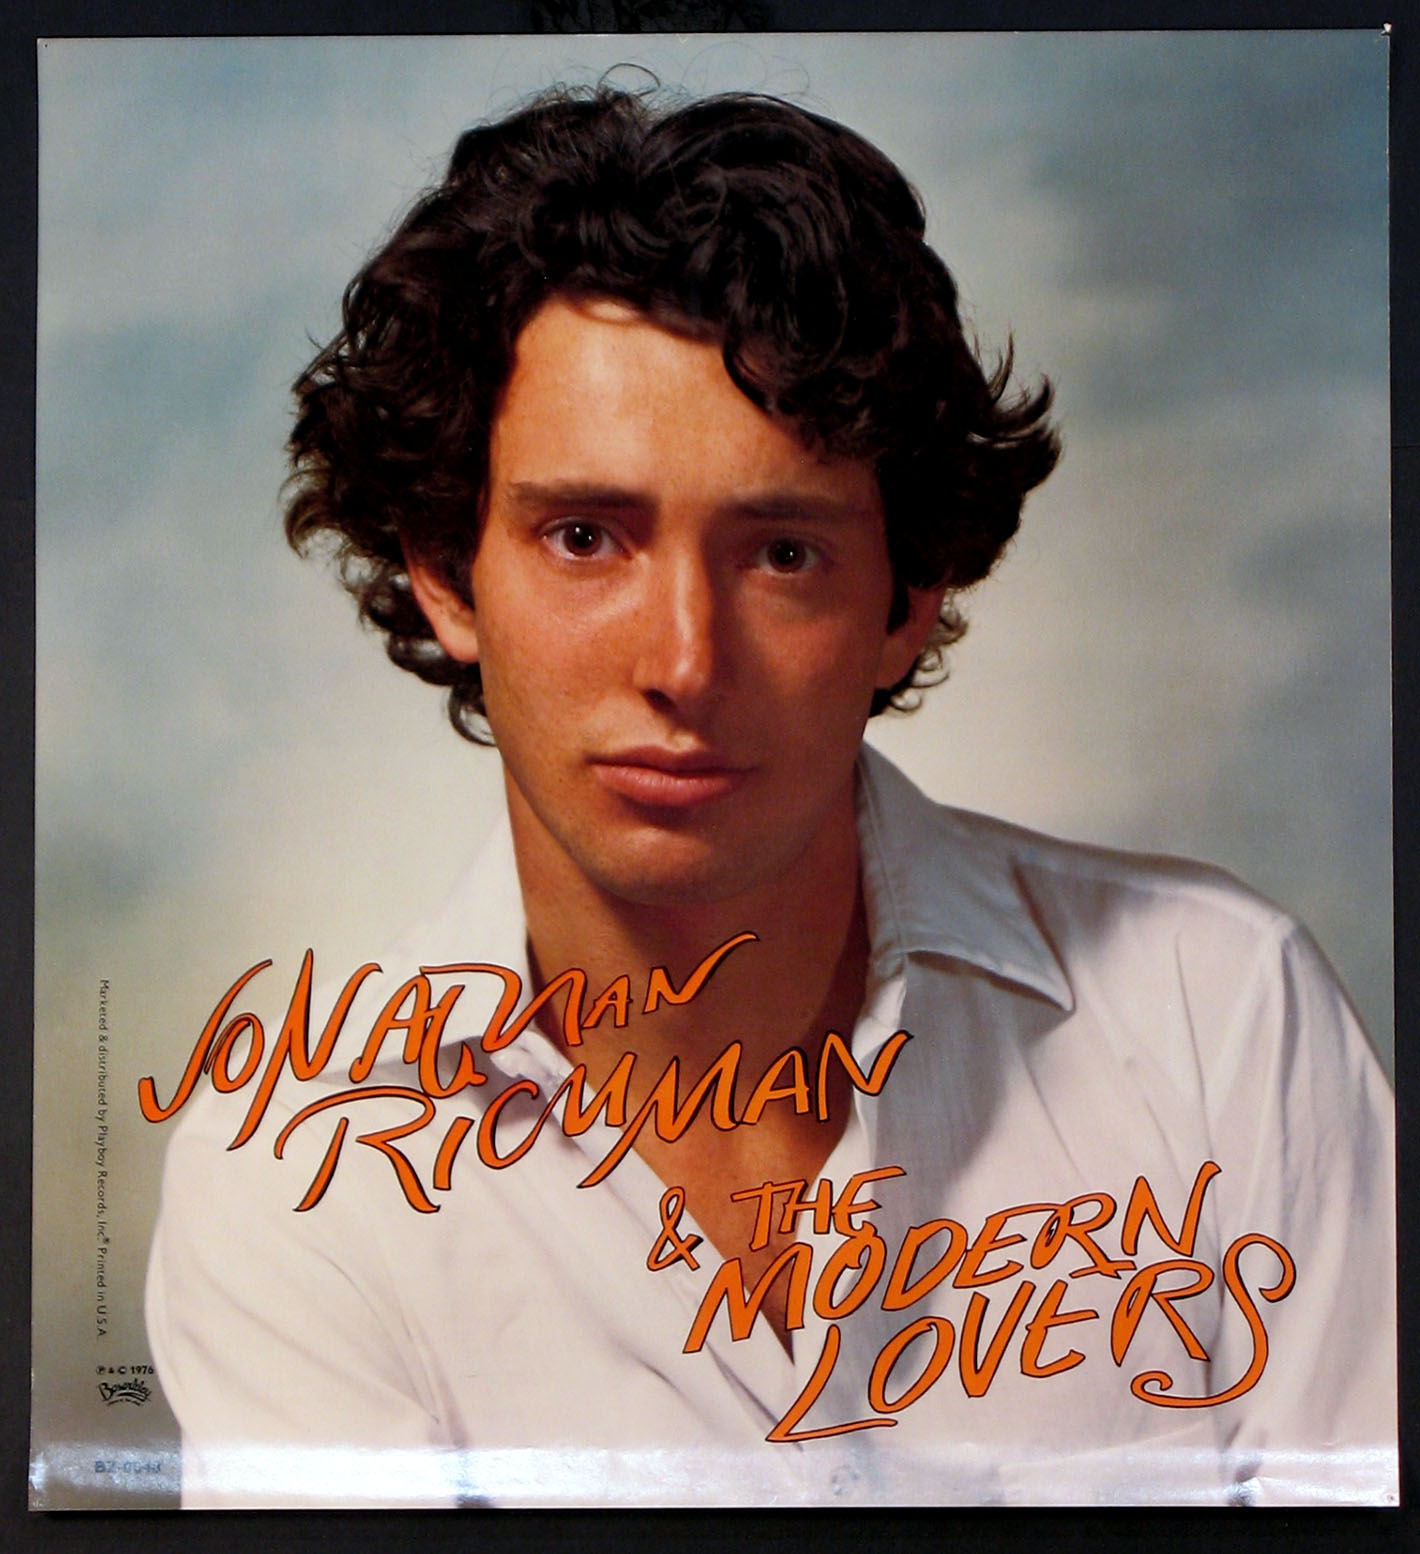 JONATHAN RICHMAN AND THE MODERN LOVERS ALBUM PROMOTIONAL POSTER @ FilmPosters.com